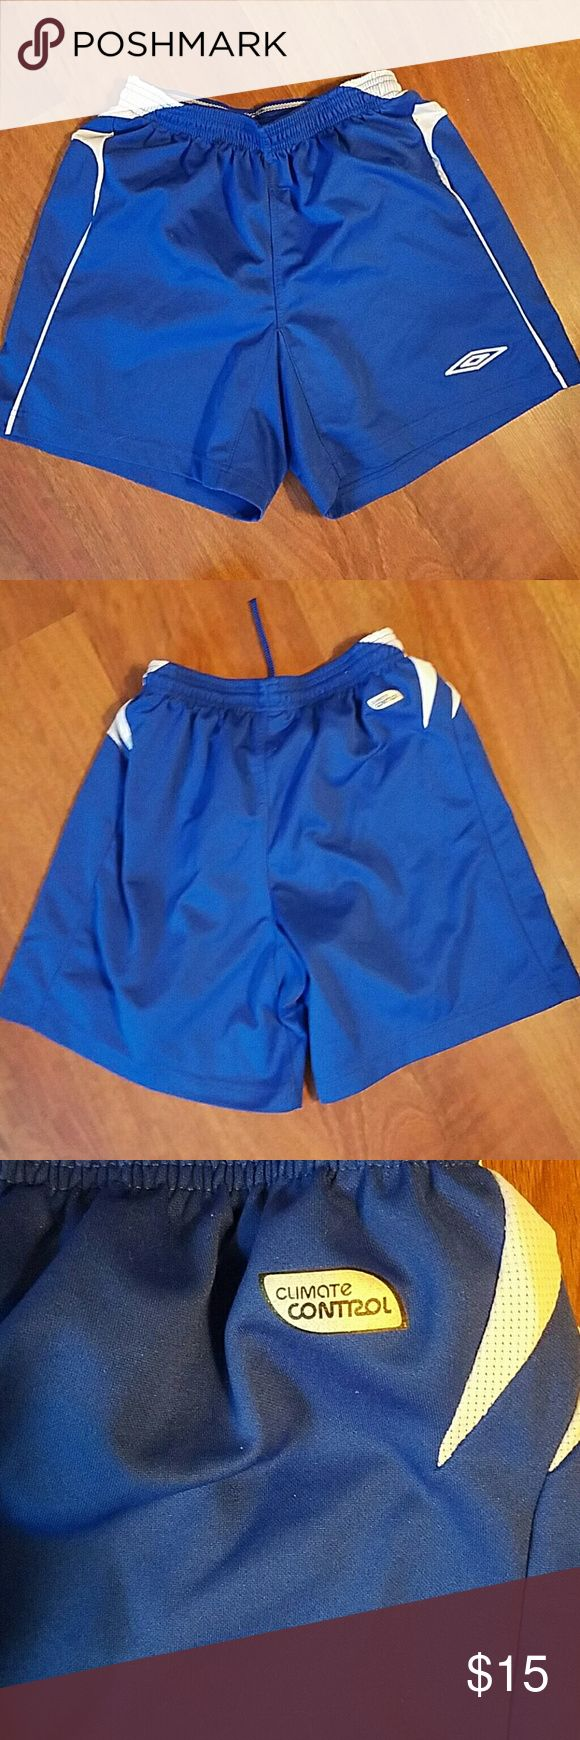 Umbro Climate Control Shorts Size Small Excellent condition but not new. Brand: Umbro SIZE: Small Color: Blue STYLE: Climate Control Umbro Shorts Athletic